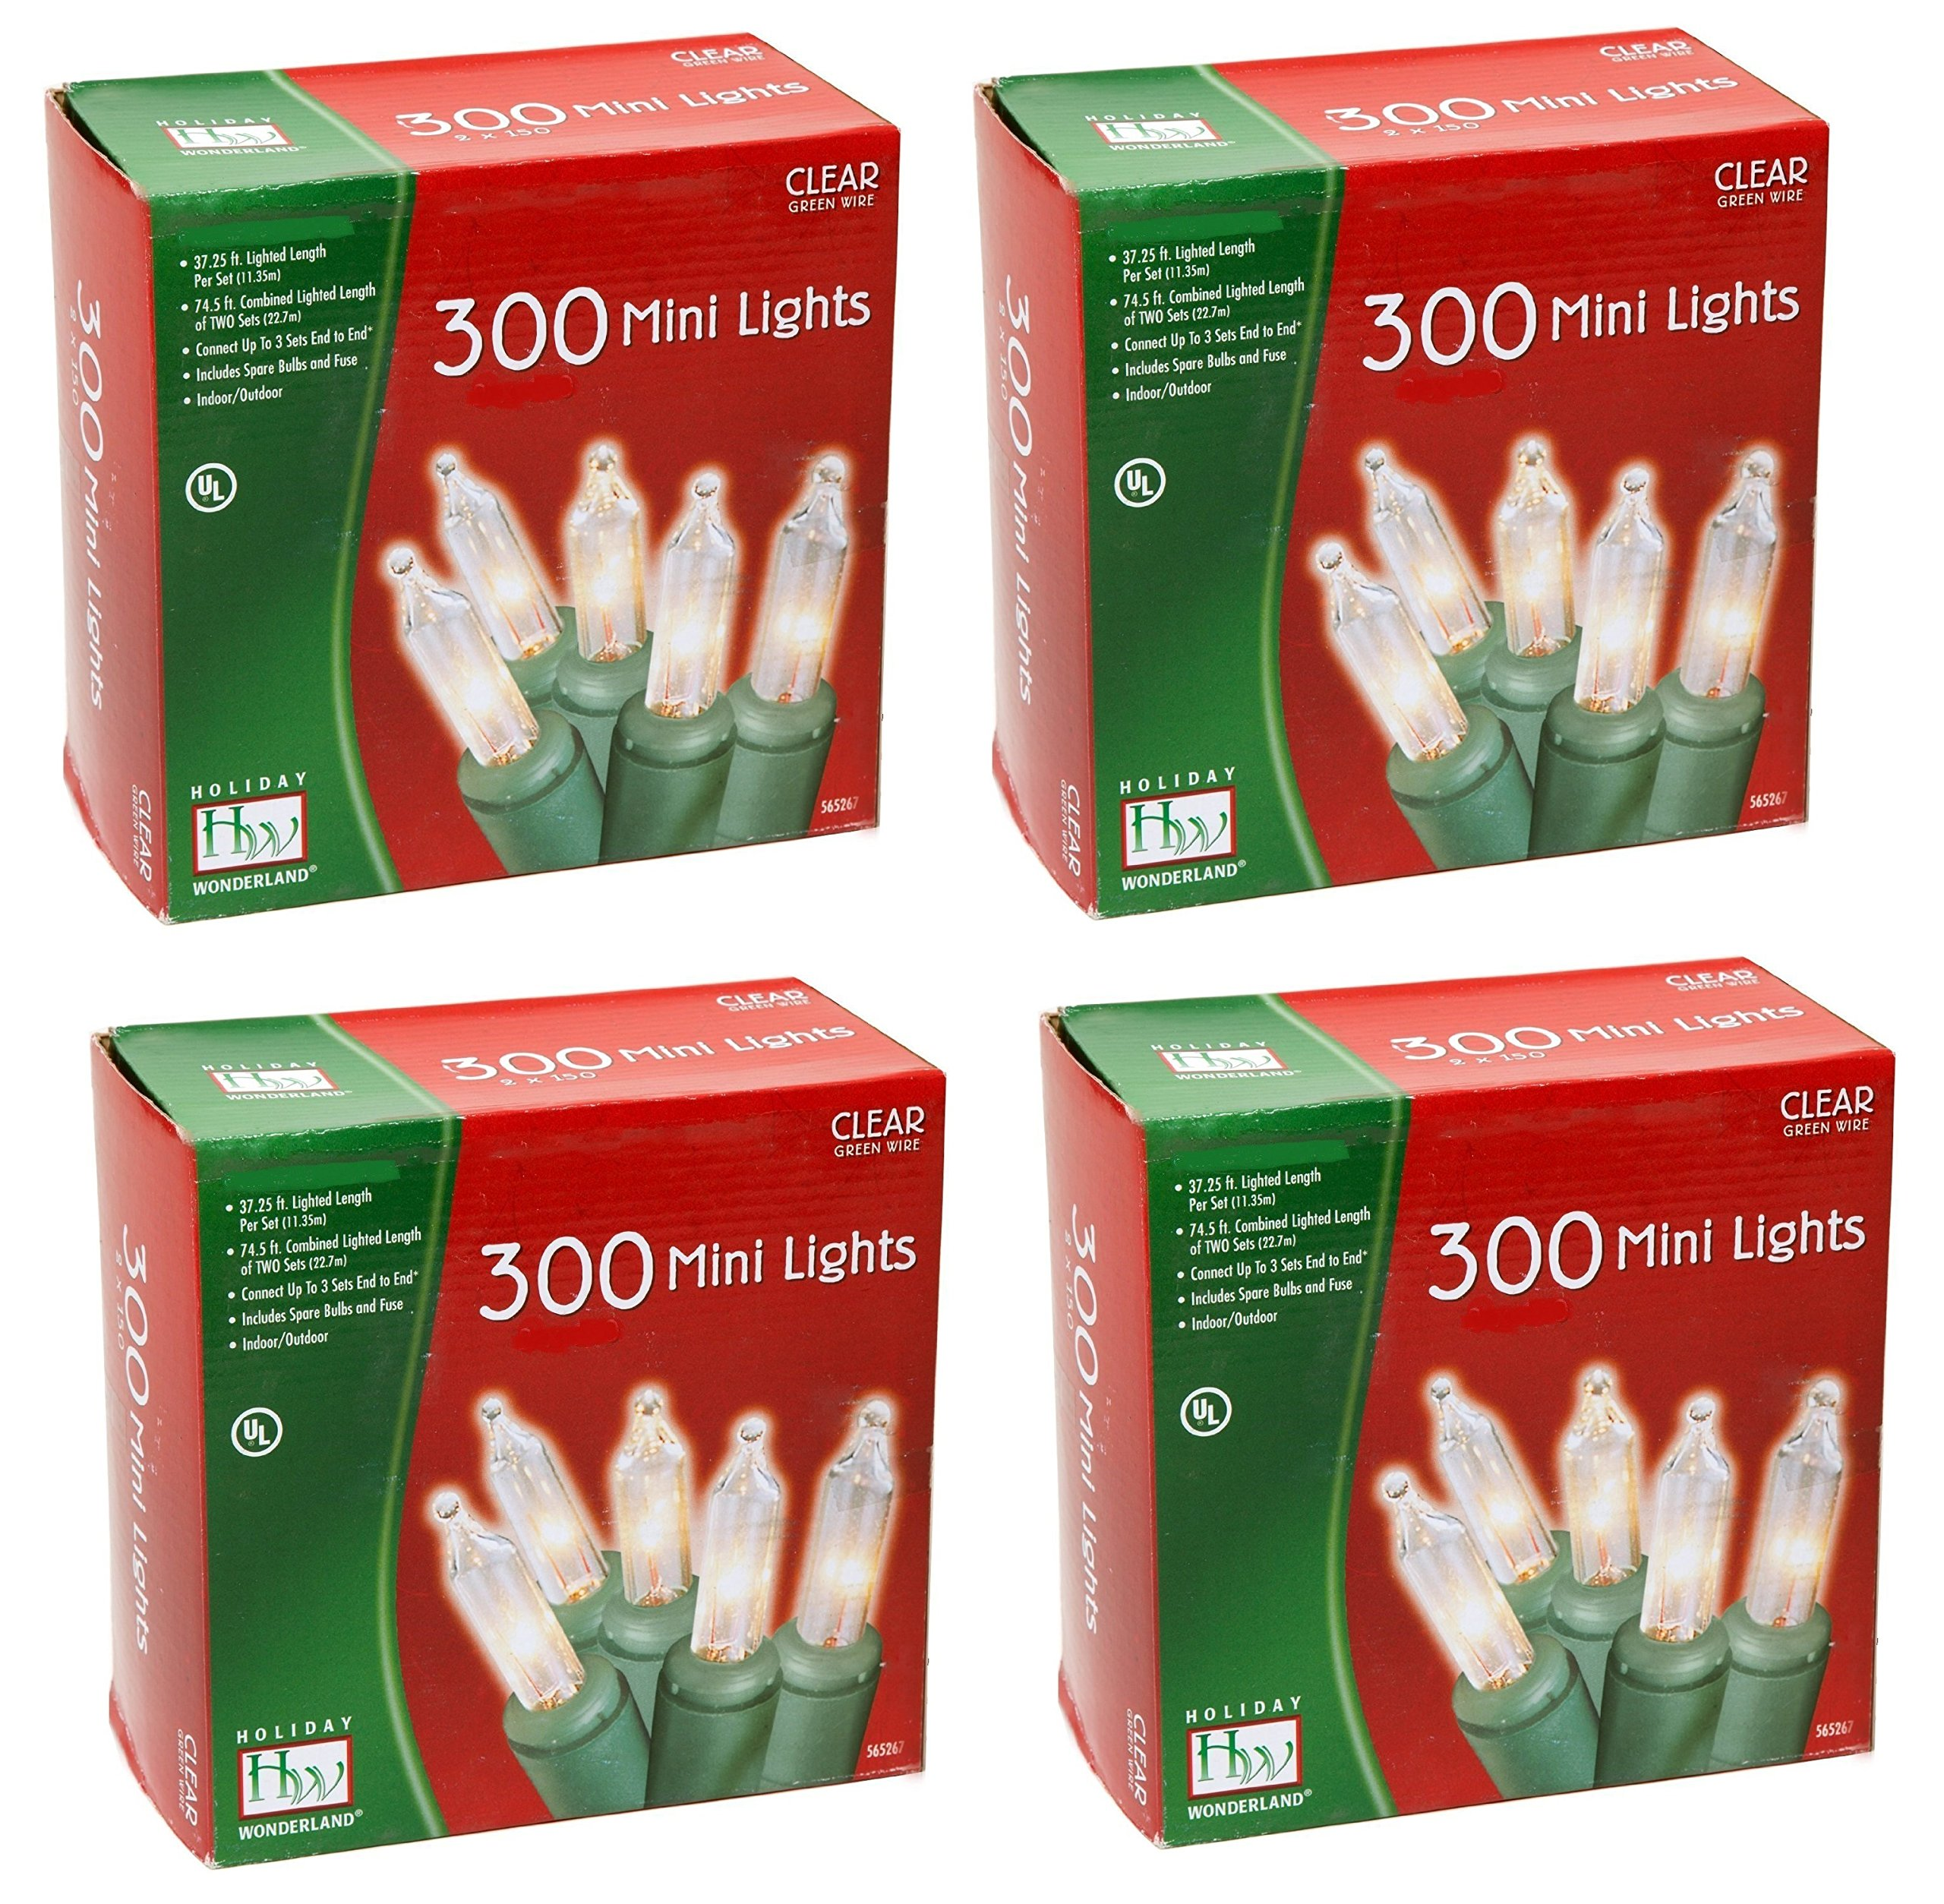 Noma/Inliten Holiday Wonderland 300-Clear Mini Lights, Green Wire (Pack of 4)